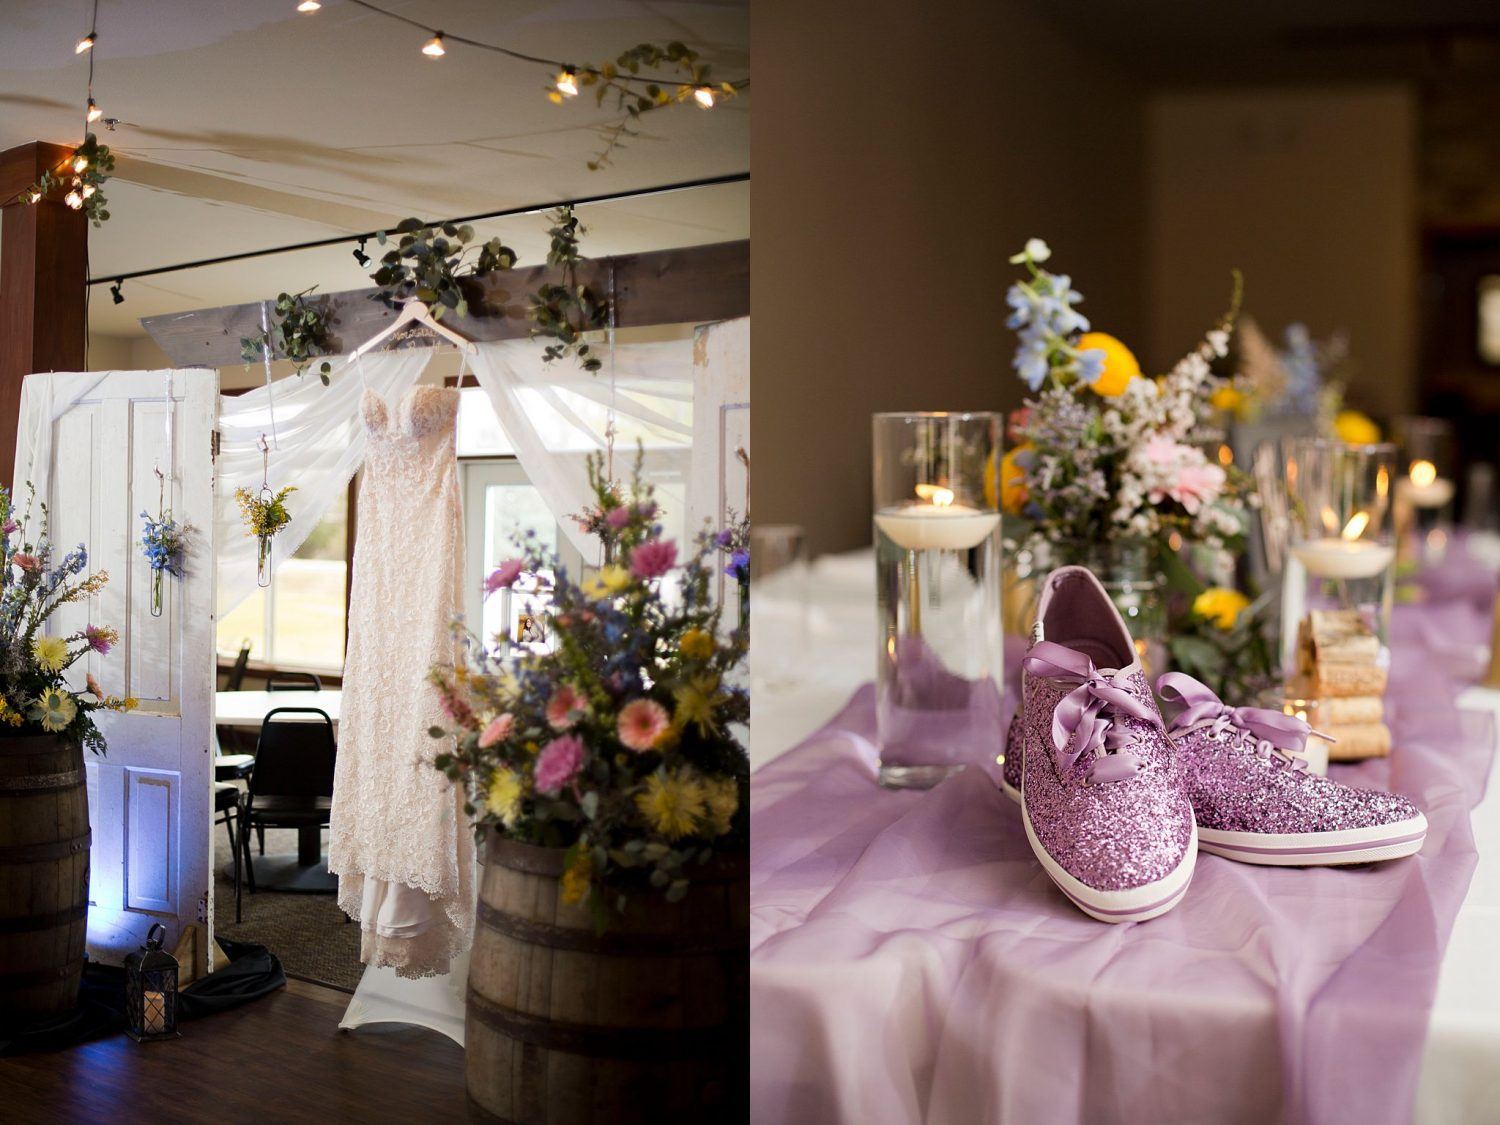 Interior of Lake Macbride golf course decorated for a wedding ceremony with bridal gown hanging up and closeup of sparkly wedding tennis shoes for the bride.